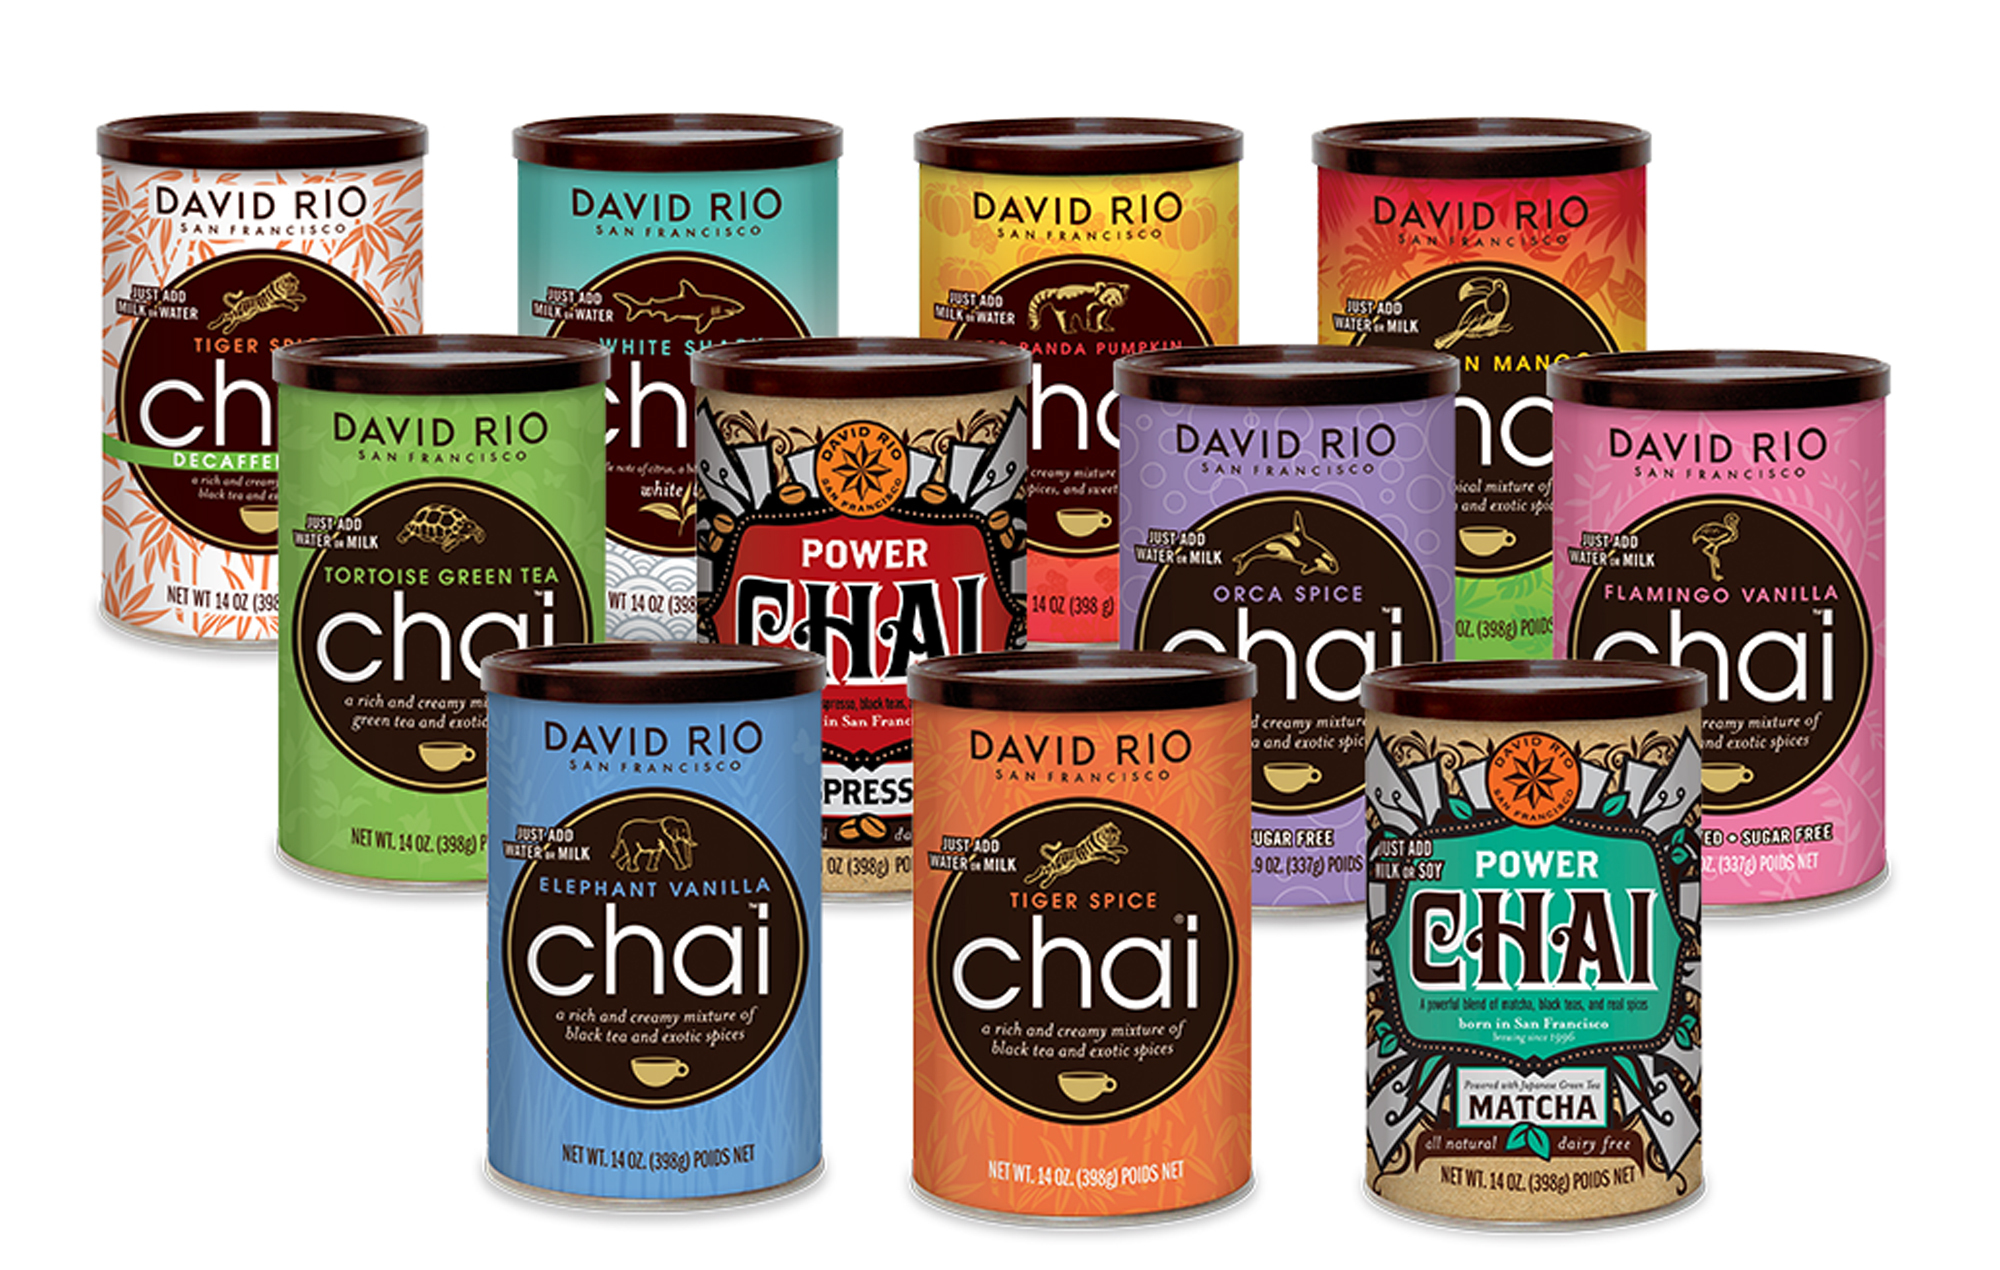 Neu im Sortiment David Rio Chai aus San Francisco!